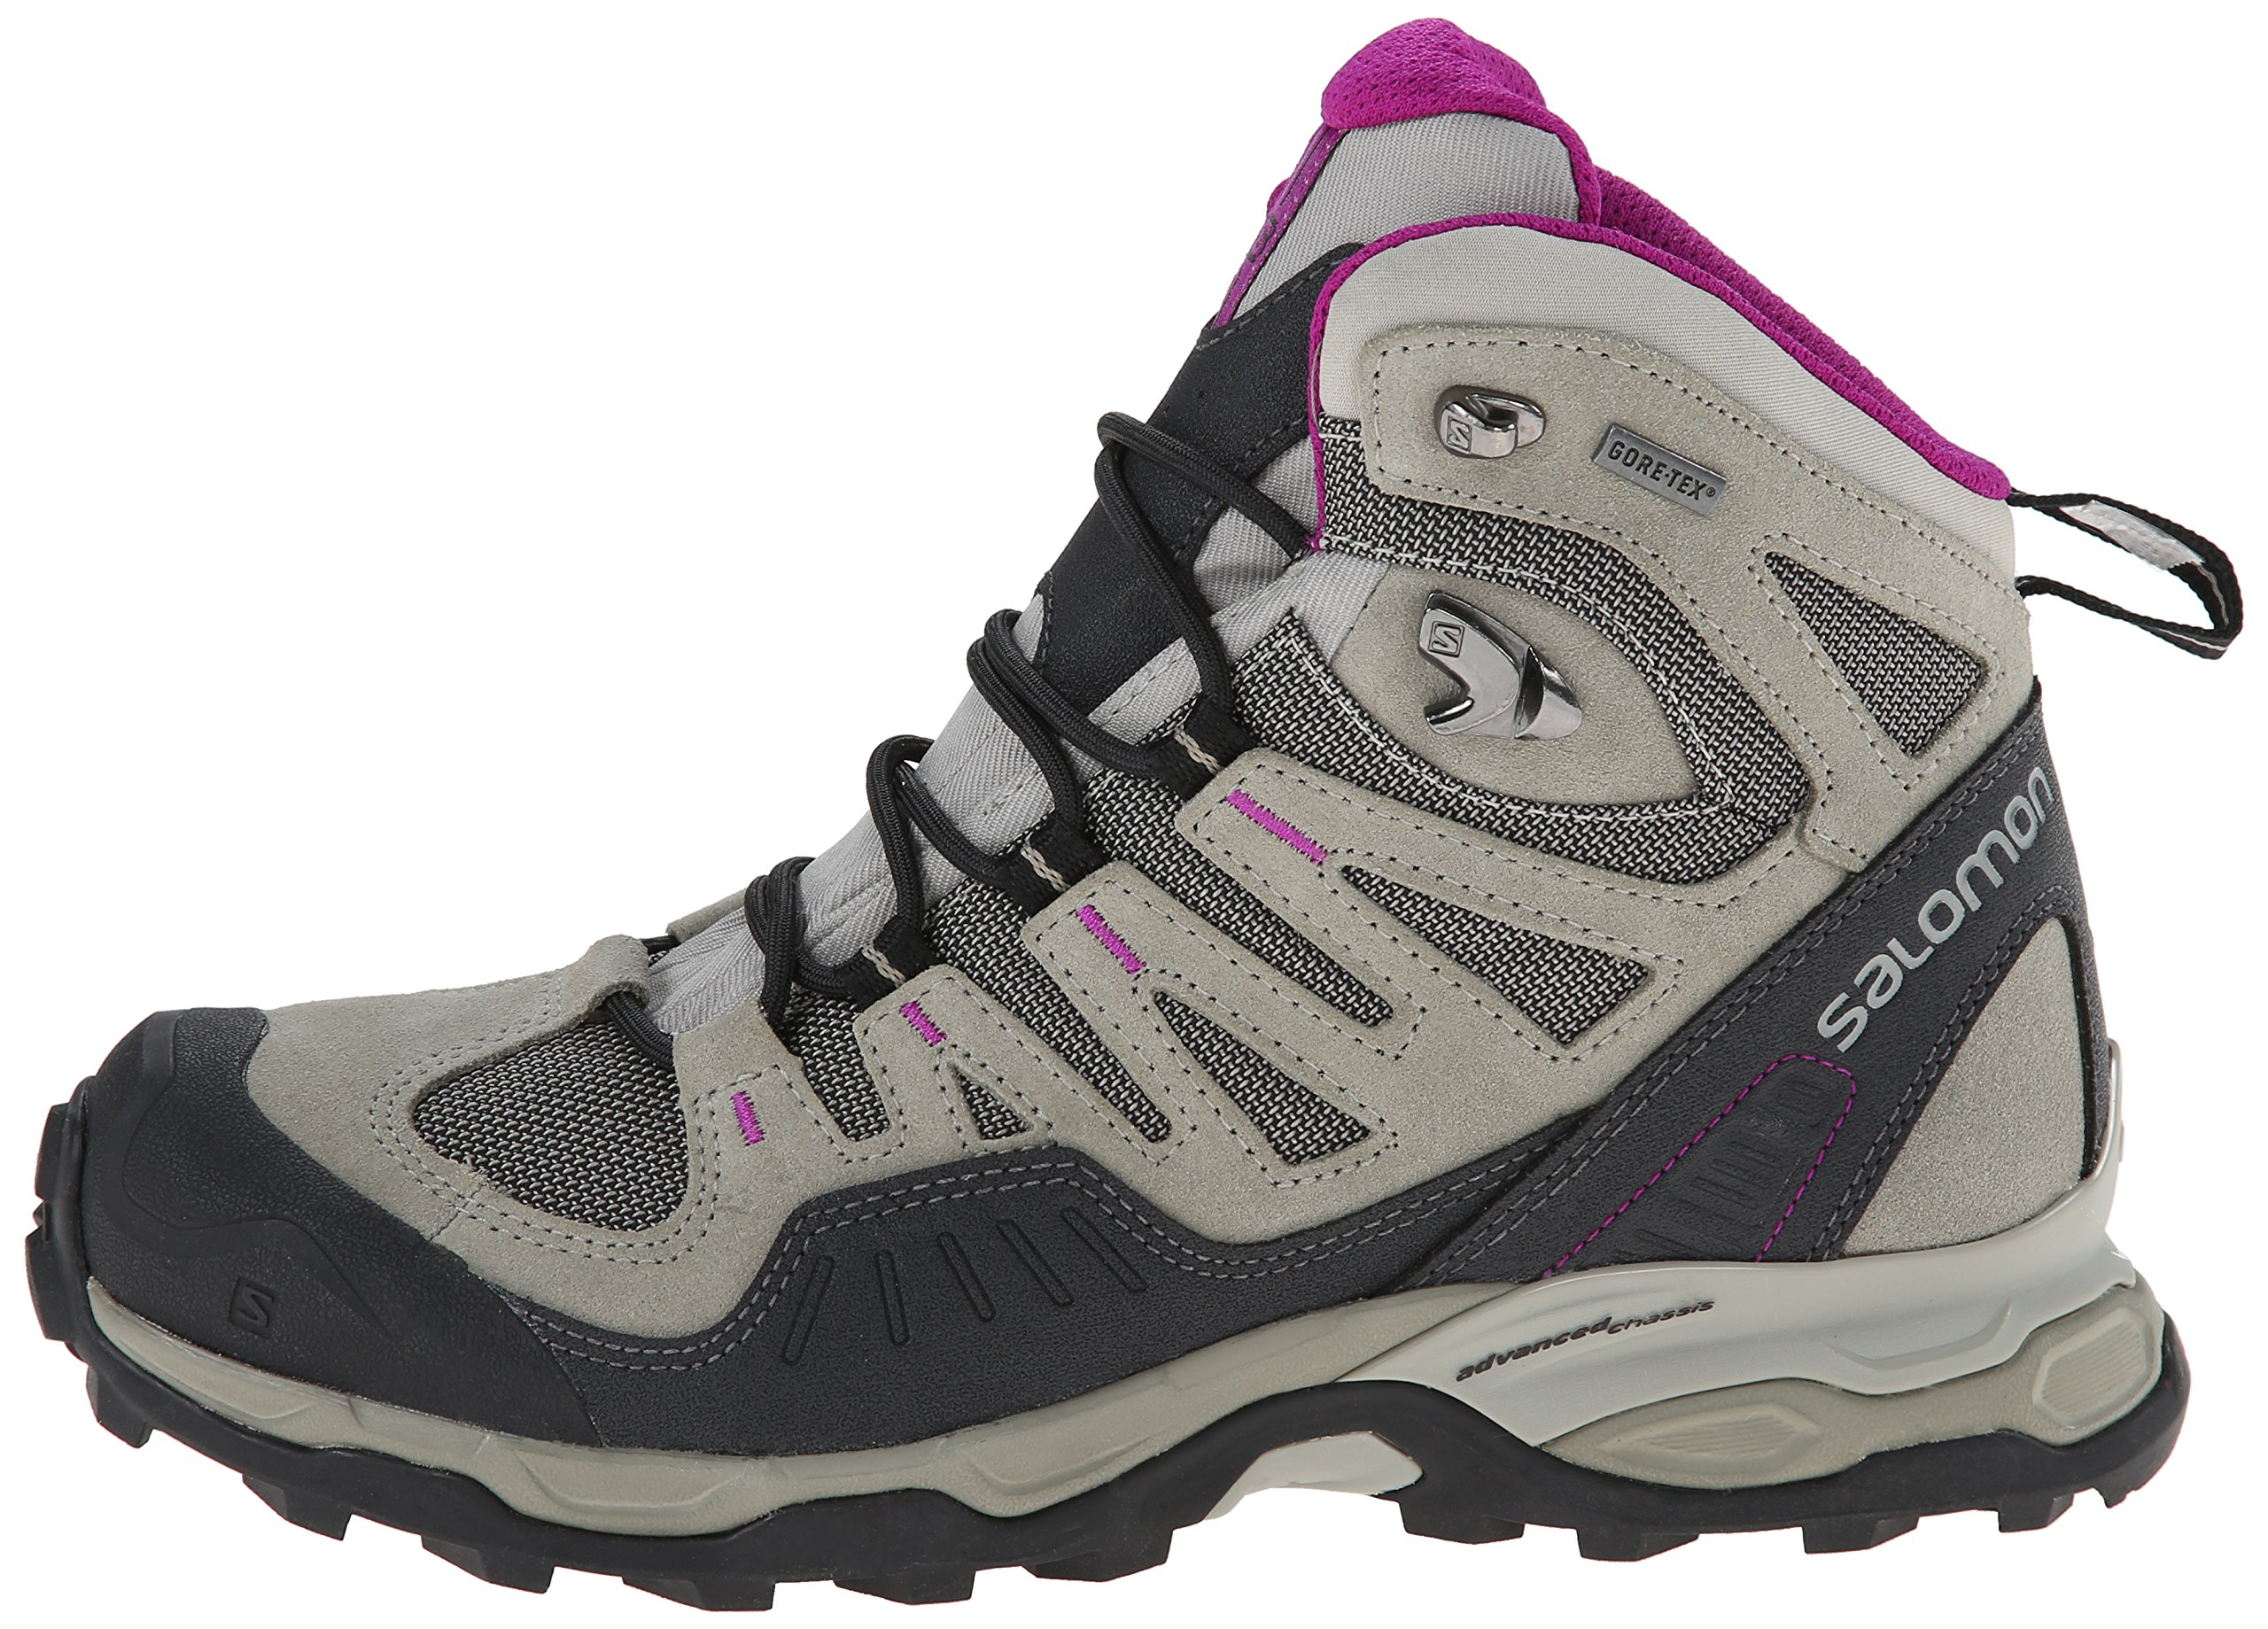 Stiefel Salomon Womens Tex Conquest Wandern Gore Outdoor Campingamp; E2IDH9